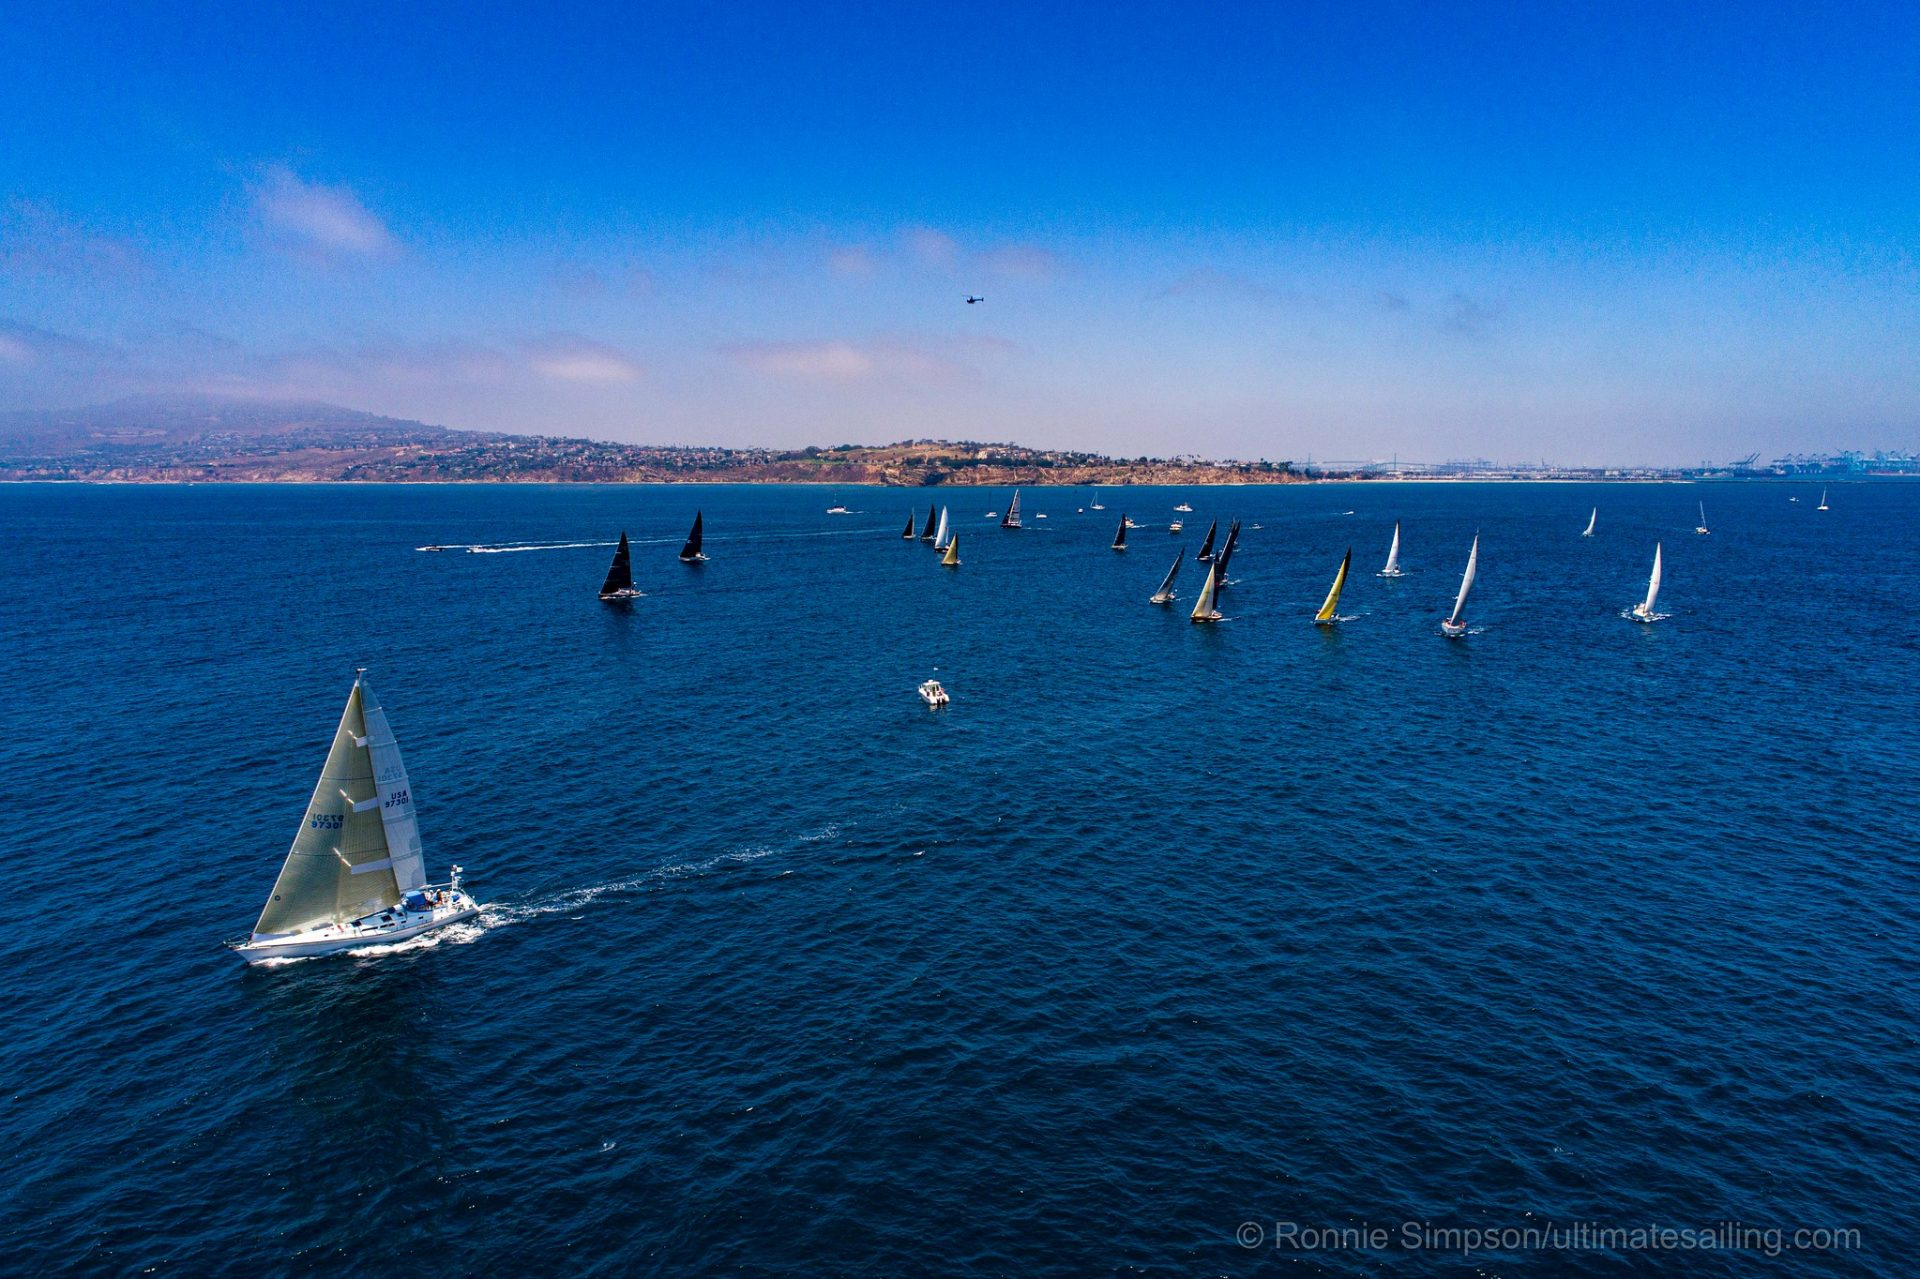 Start of the 2019 Transpac race